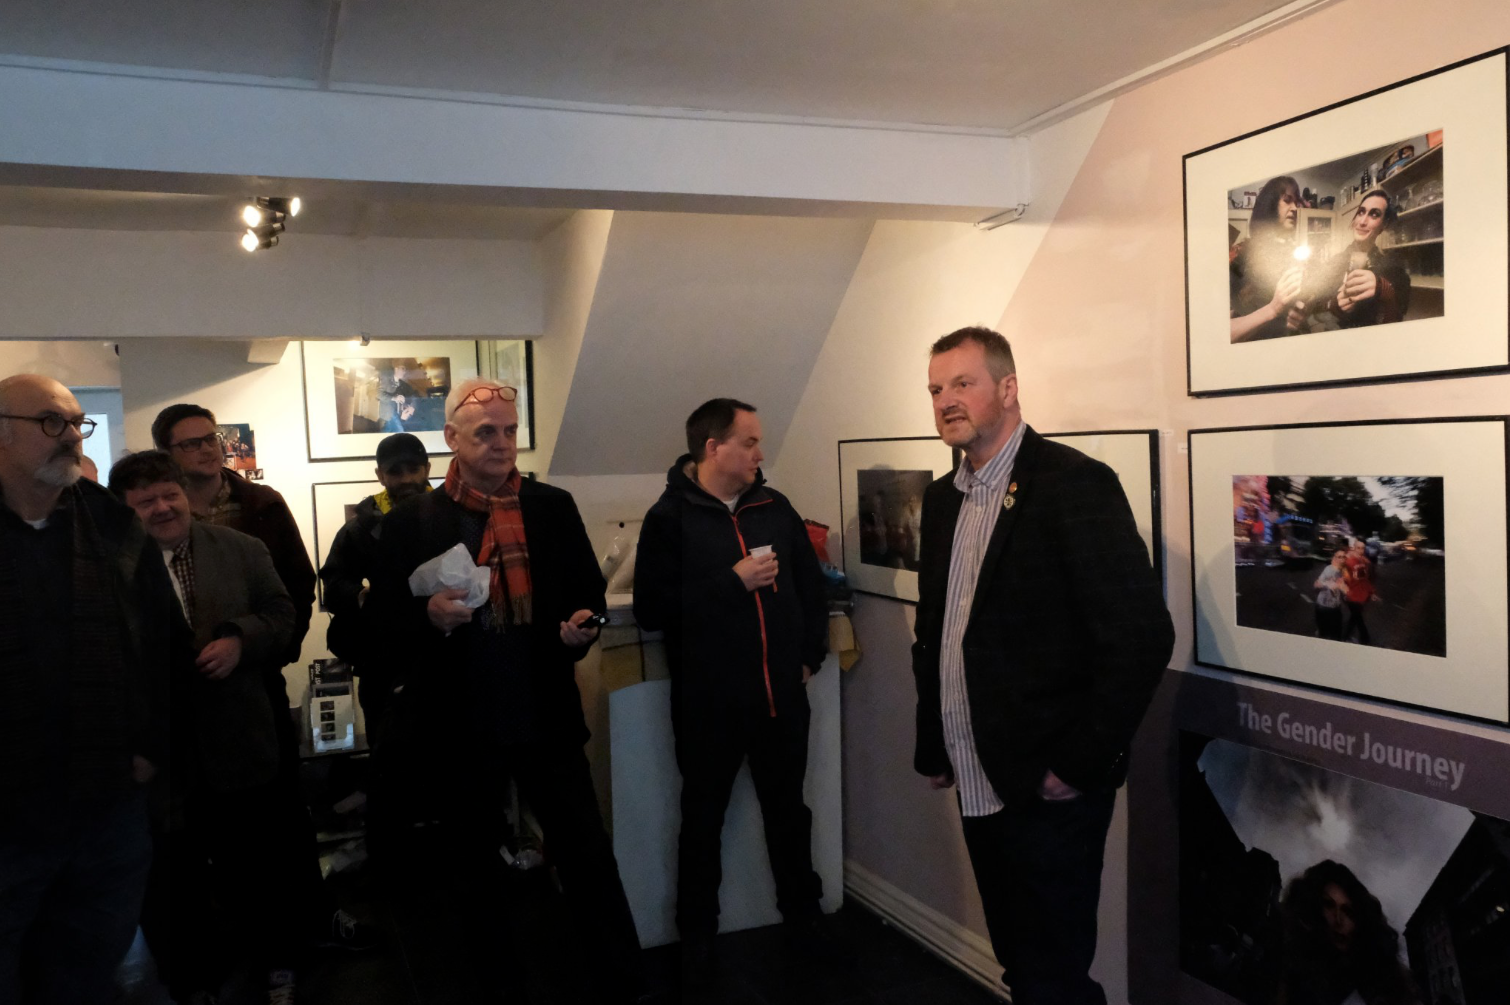 Roger Tiley speaking at the exhibition opening.